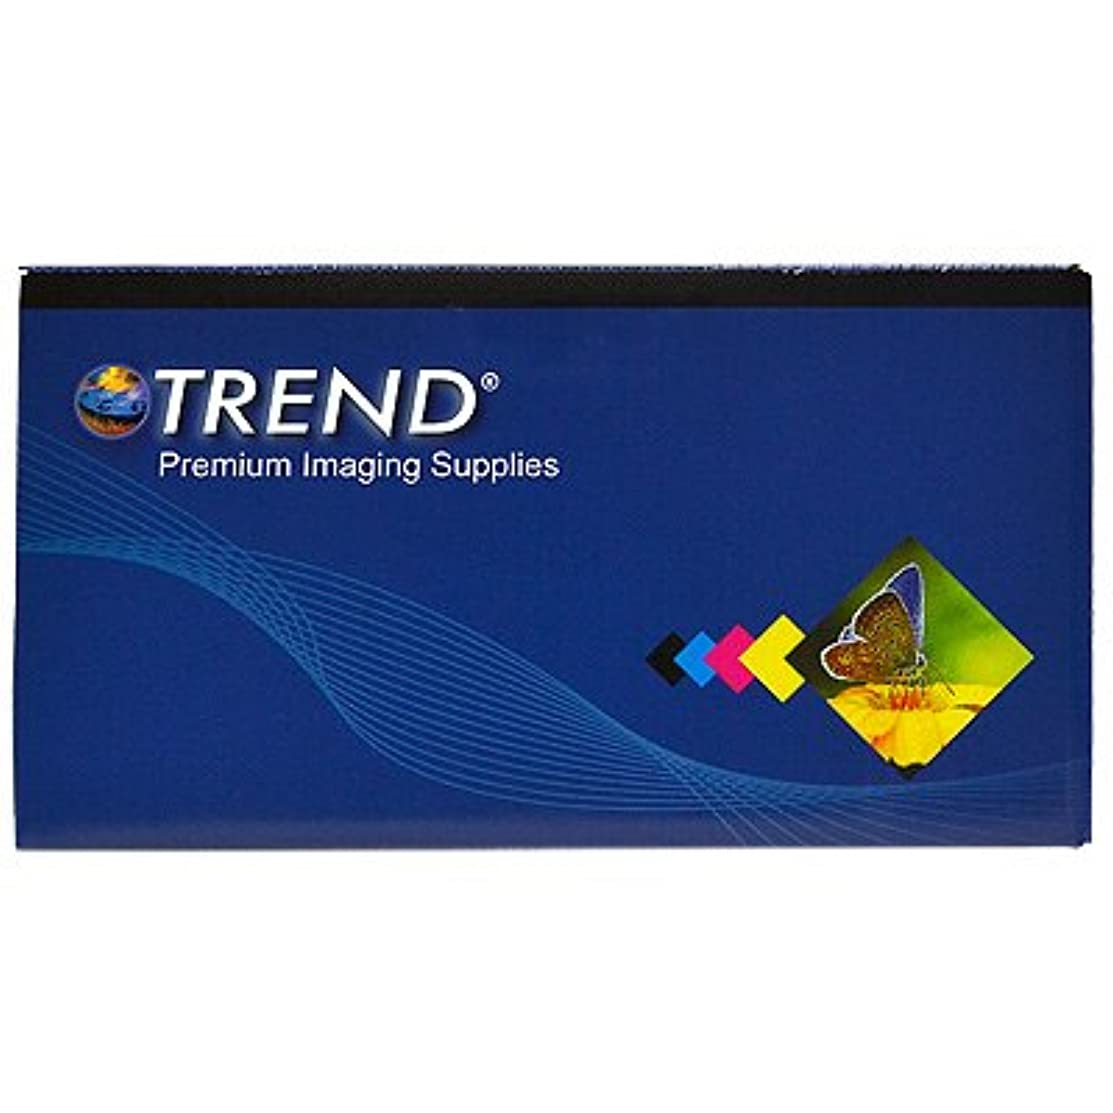 TREND Premium Compatible, Made in the USA for Sharp FO-5CR/ UX-5CR (FO5CR/ UX5CR) Imaging Film 2 Rolls (165 YLD) (50 meter) for UX-P100 Printers